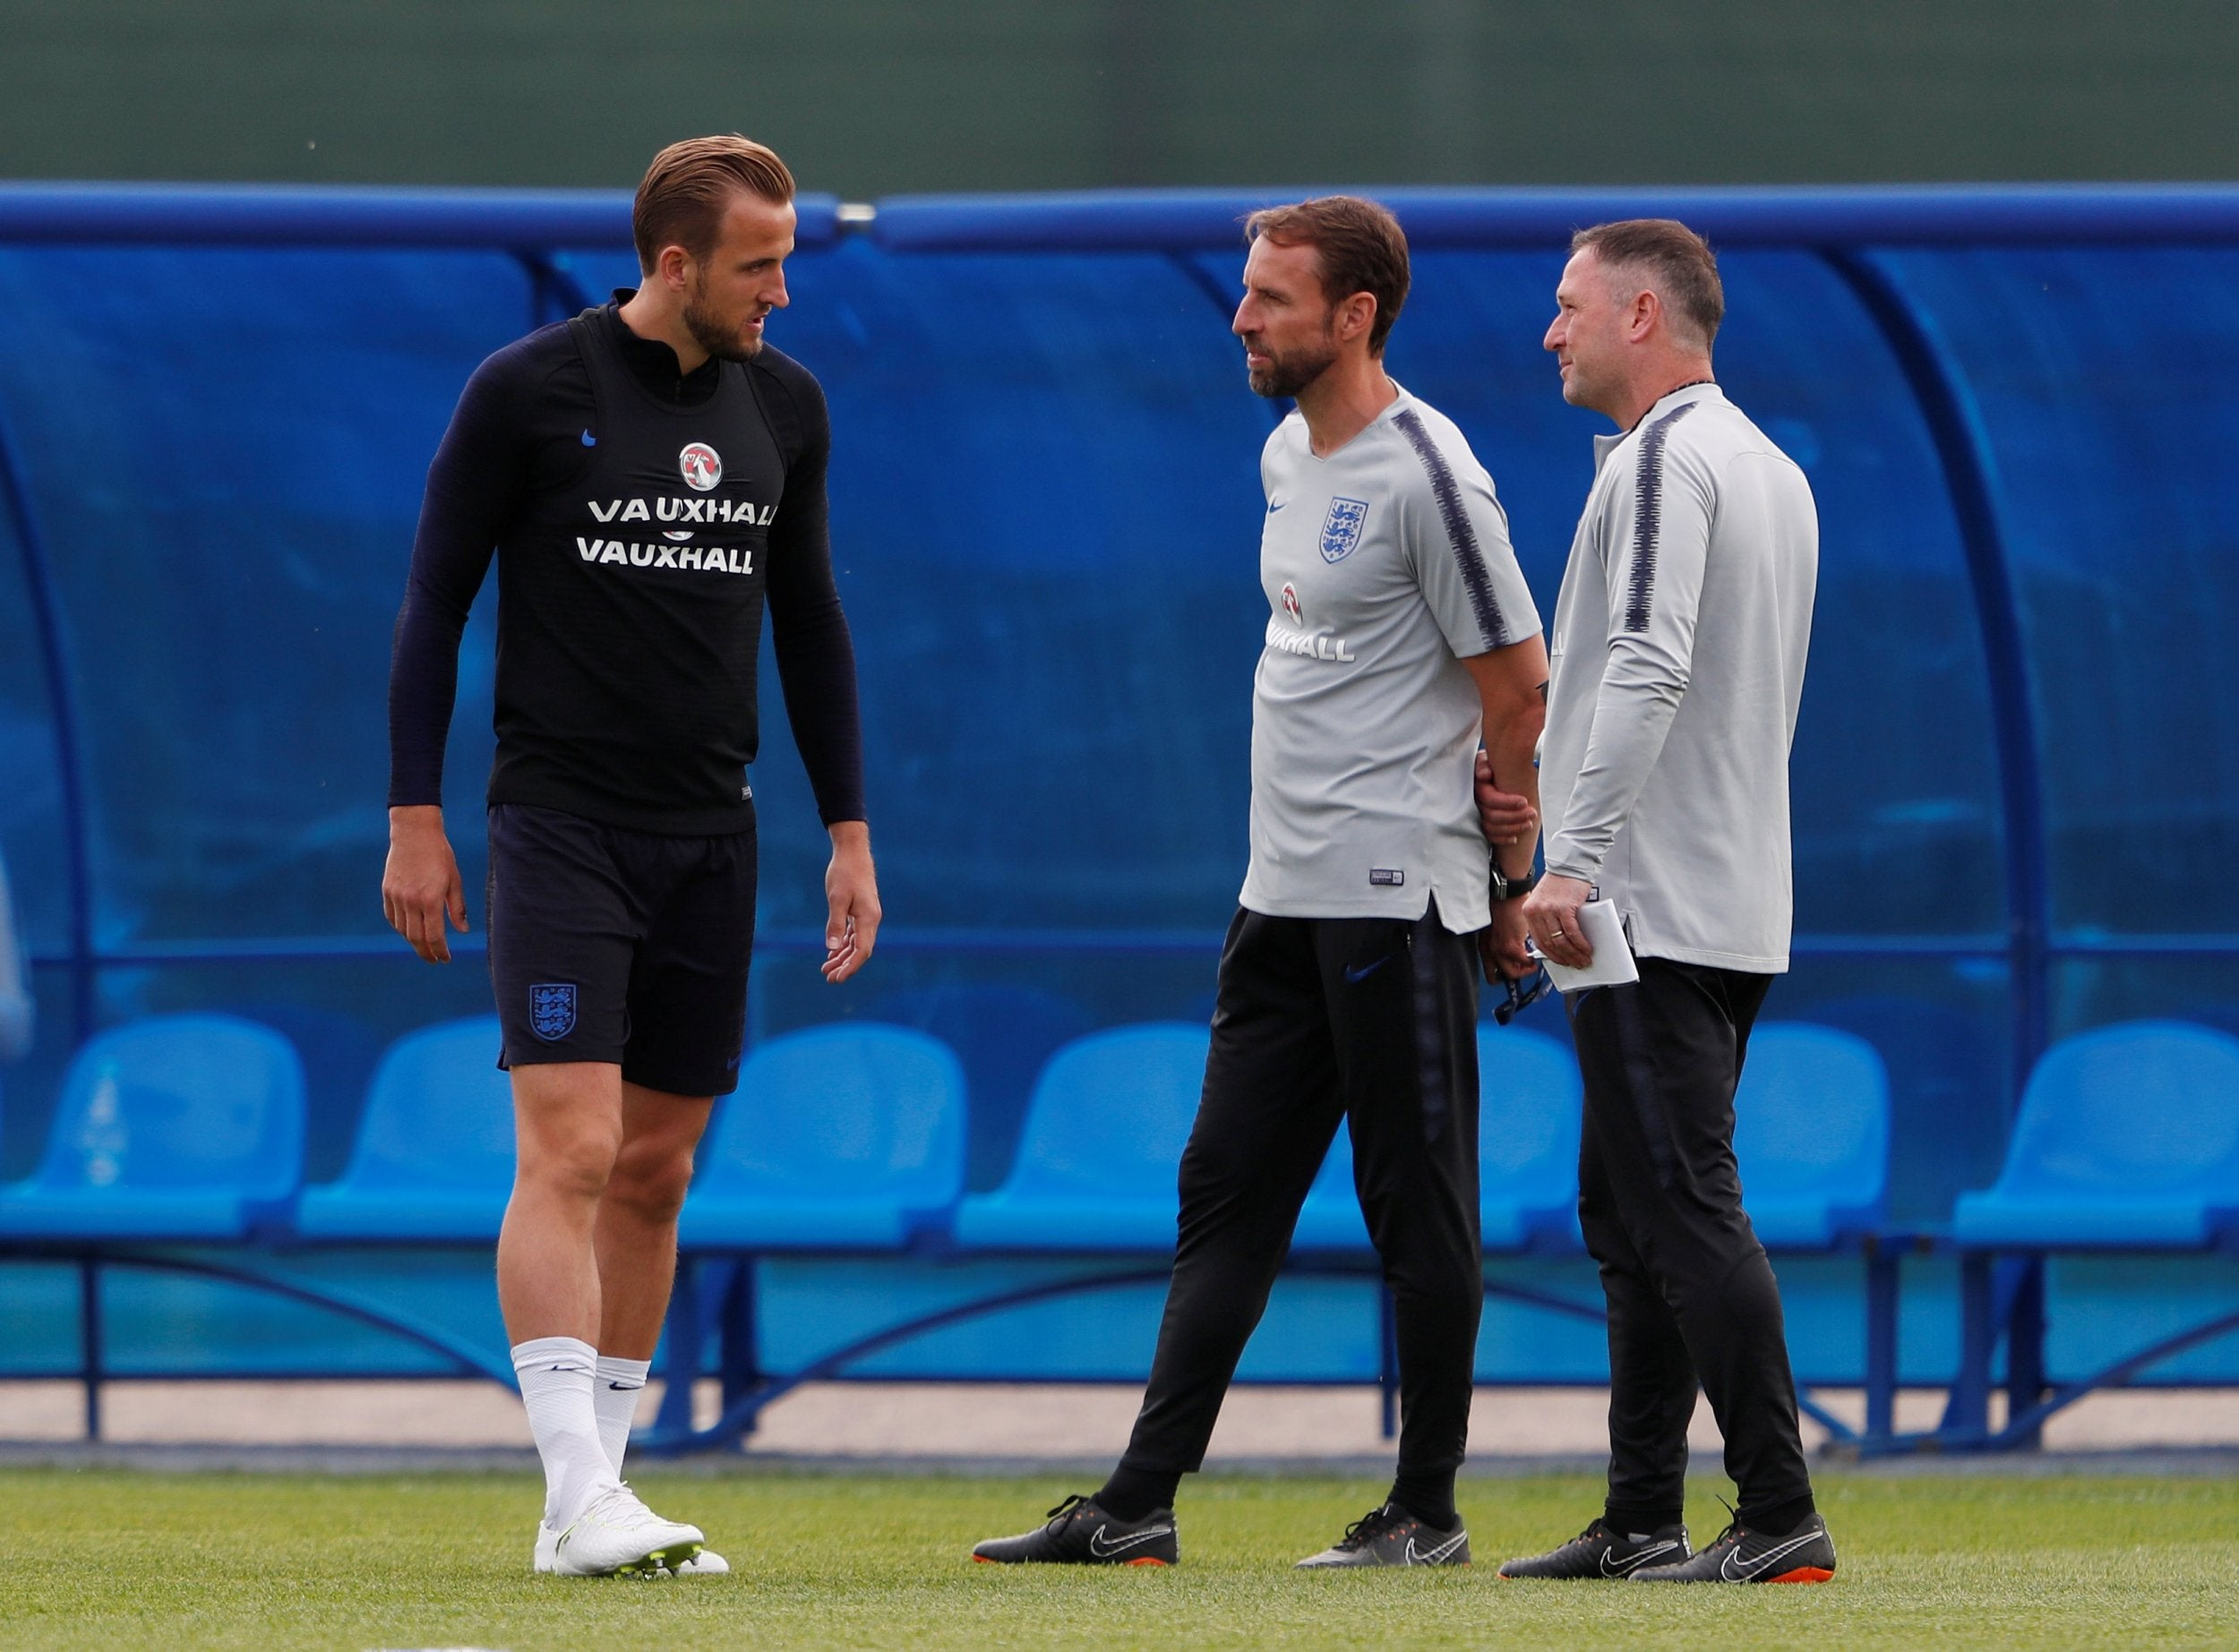 England vs Panama LIVE World Cup 2018: Prediction, how to watch online, what time, what channel, team news, betting odds and more